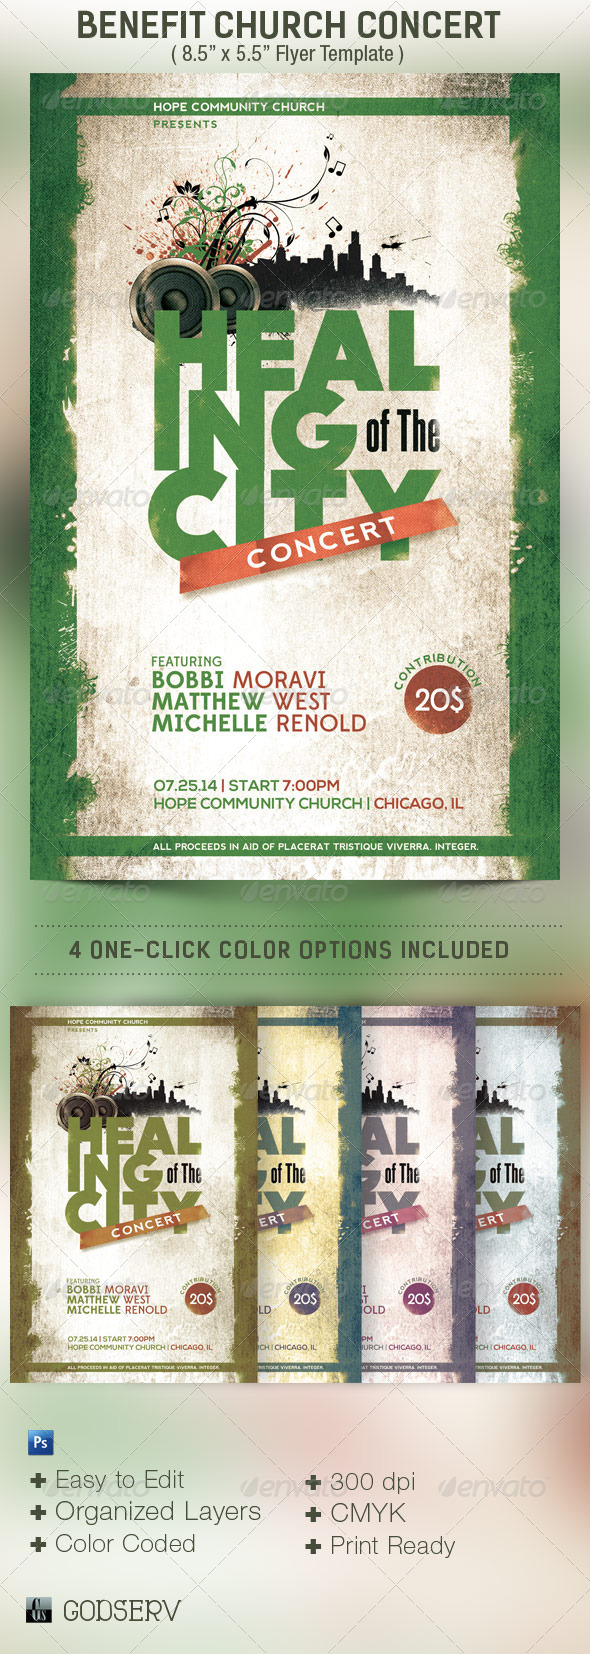 GraphicRiver Benefit Concert Church Flyer Template 4886399